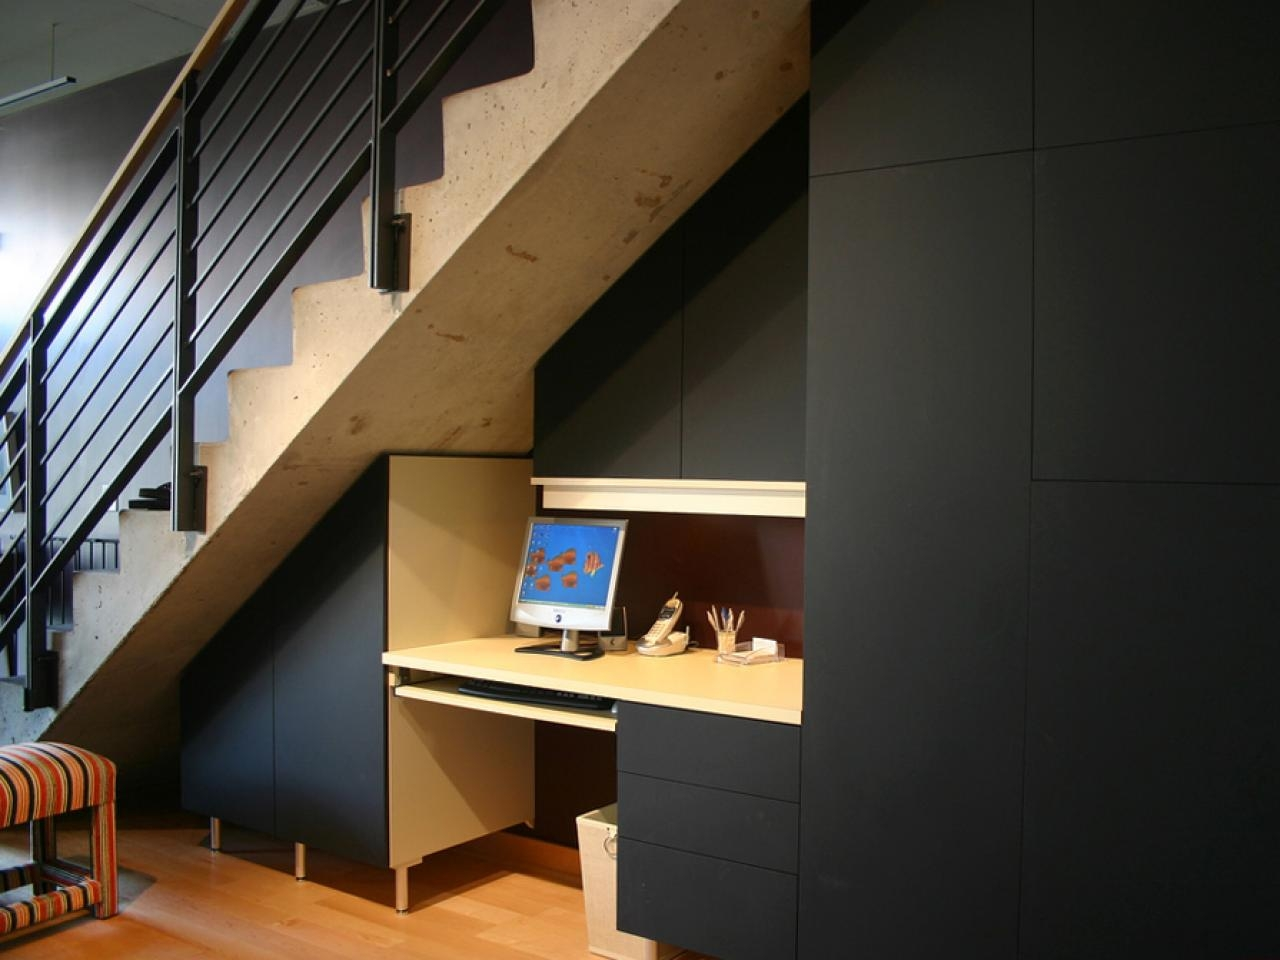 Modern Under Staircase Design Cerebral California Closets Under Stair Storage Image 10